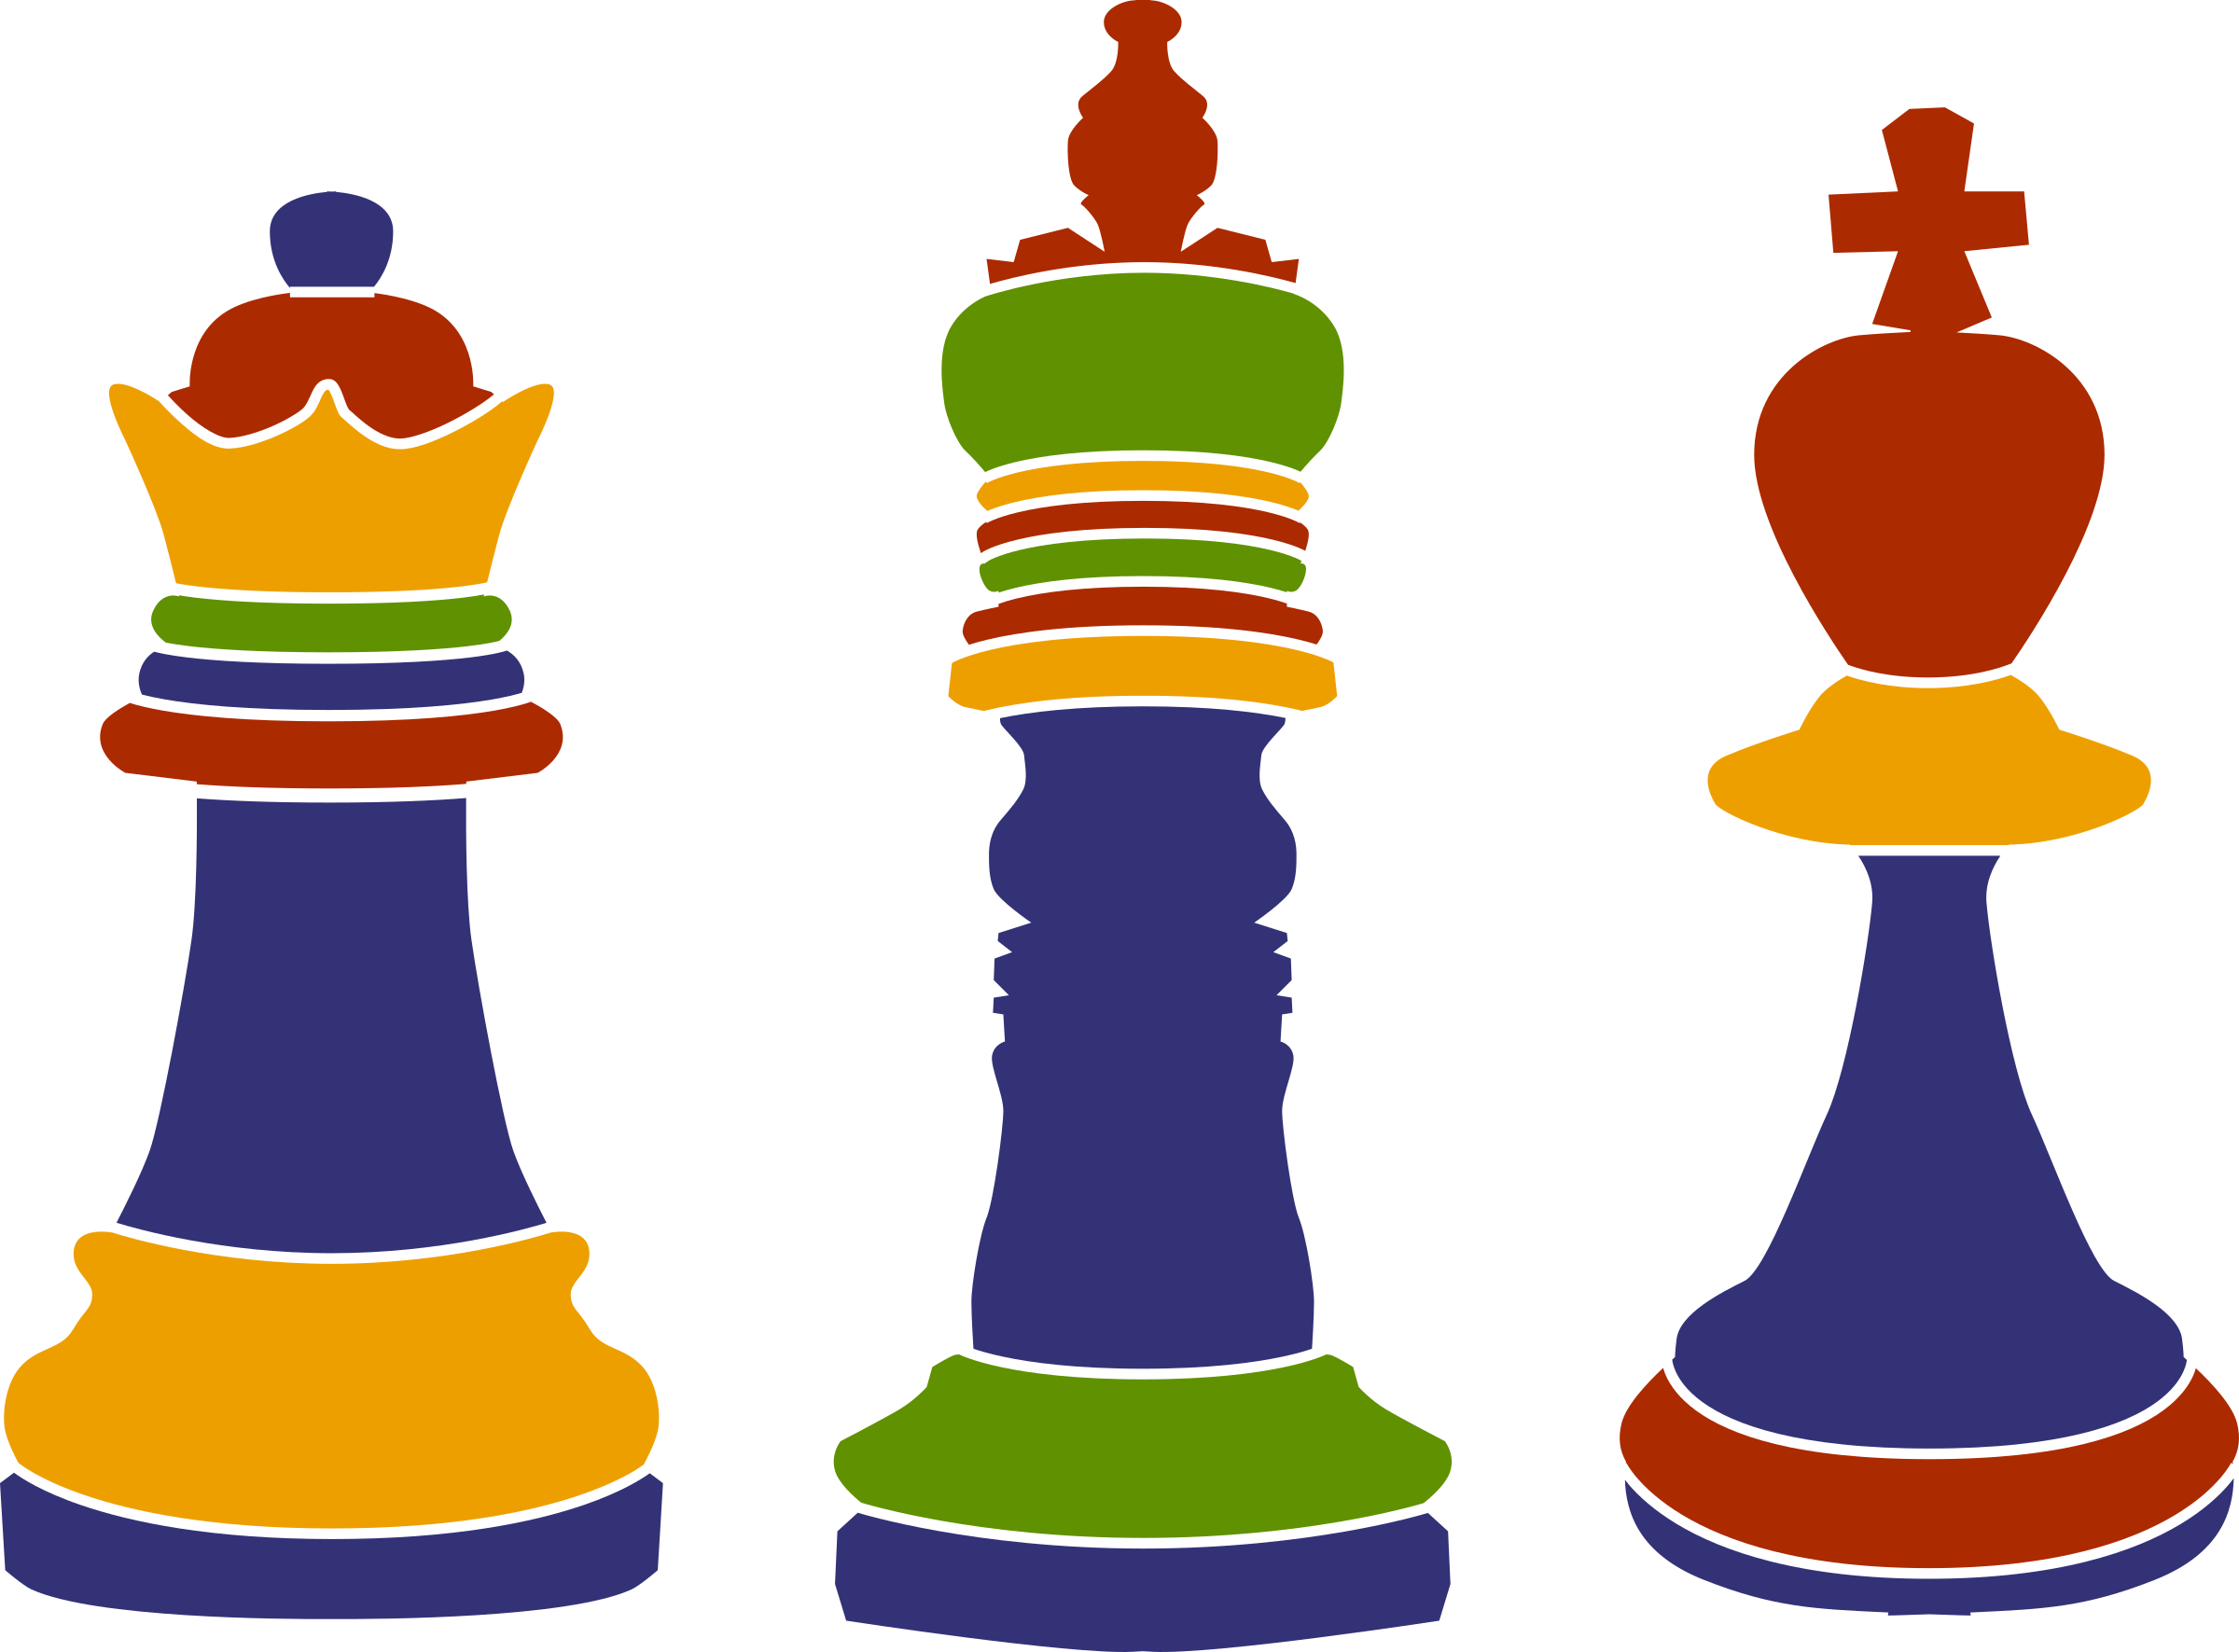 3 clipart kings. Chess big image png